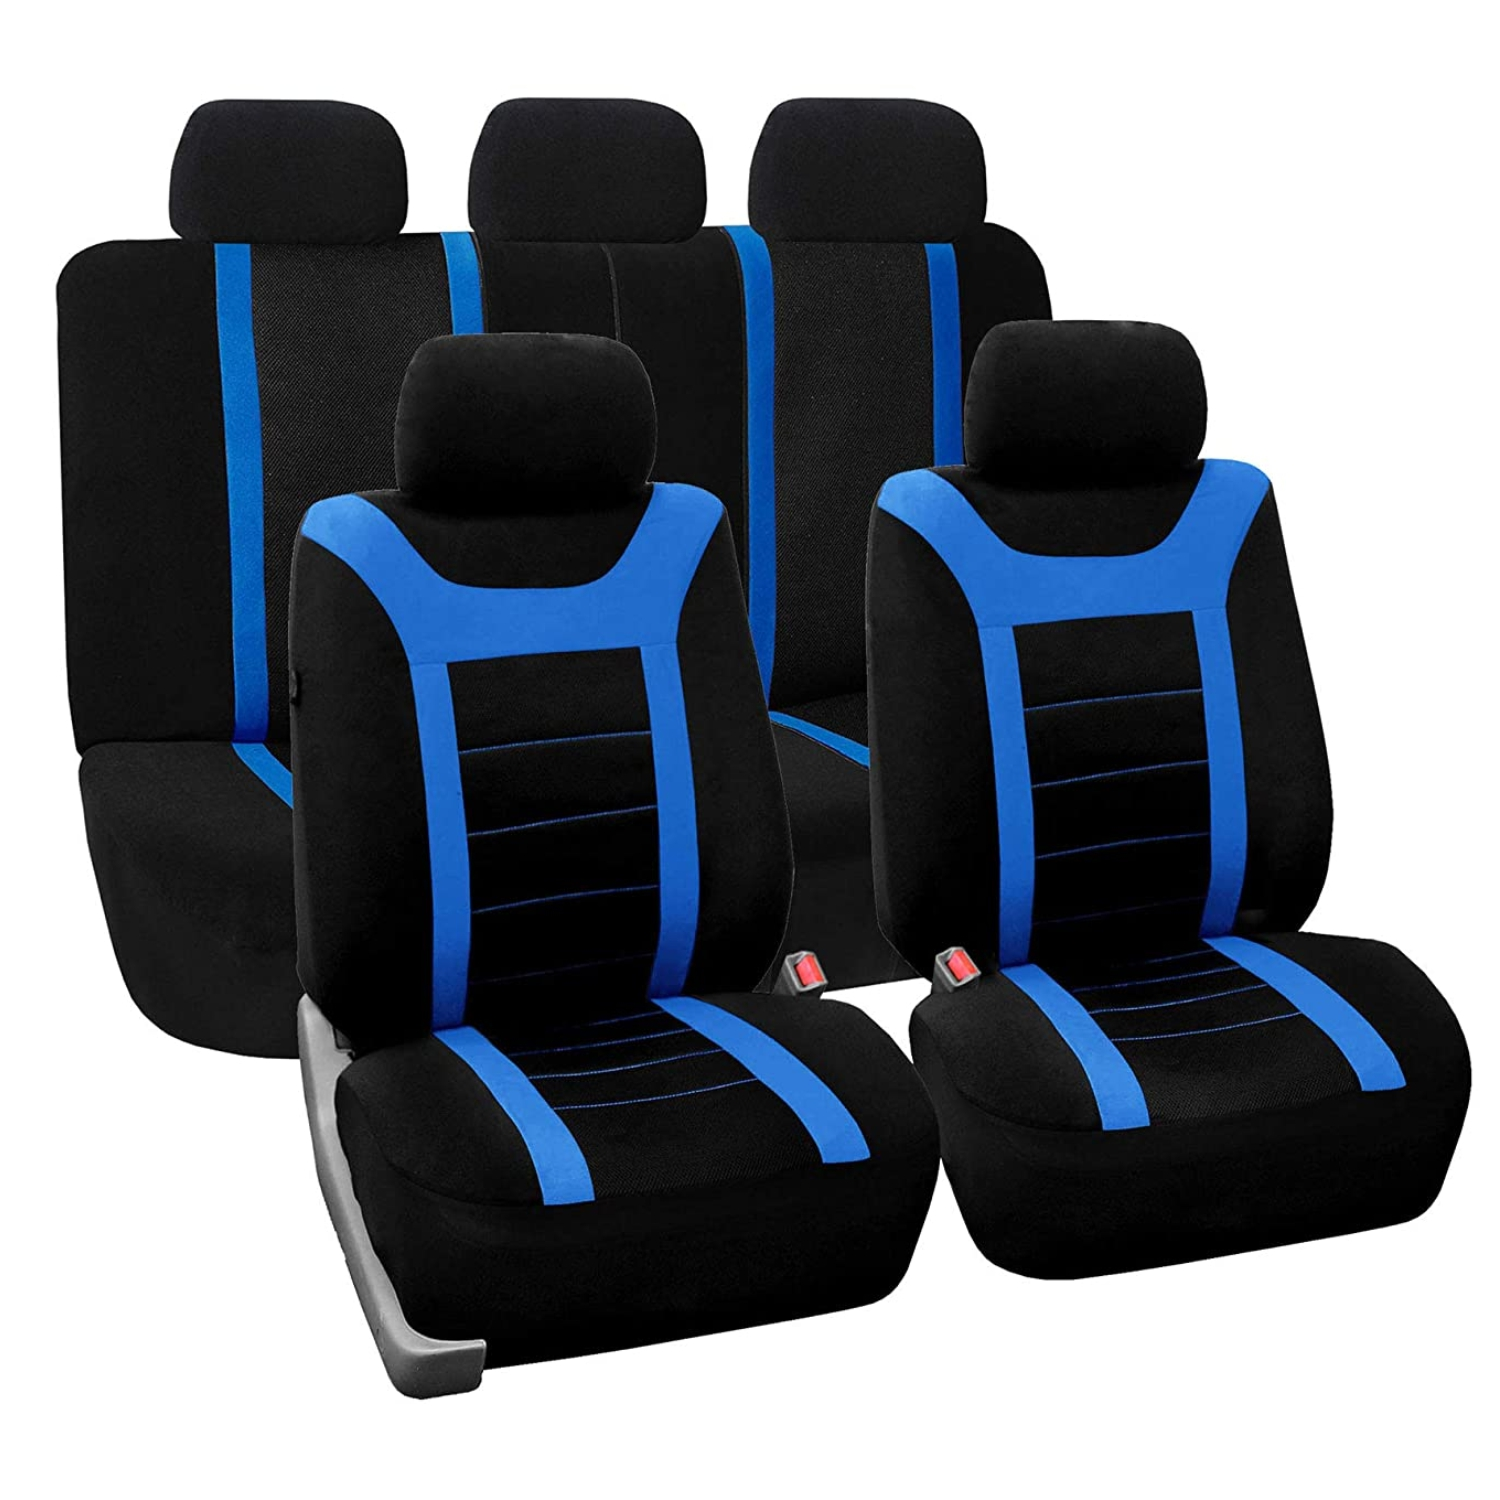 SB203 - Car Seat Cover set protector with SIDE AIRBAG BLACK / BLUE